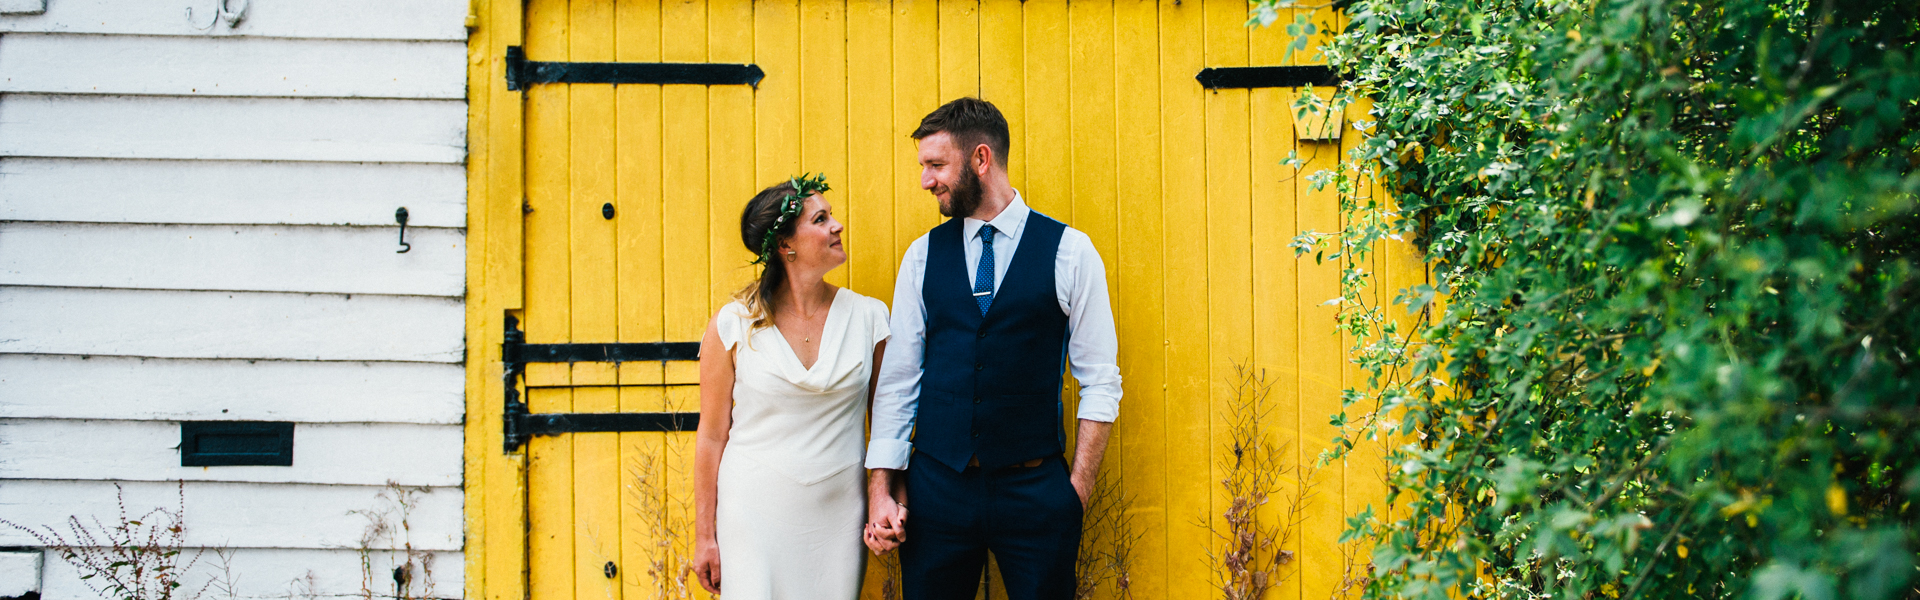 Alison Dewey Photography, Fun wedding photography Brighton